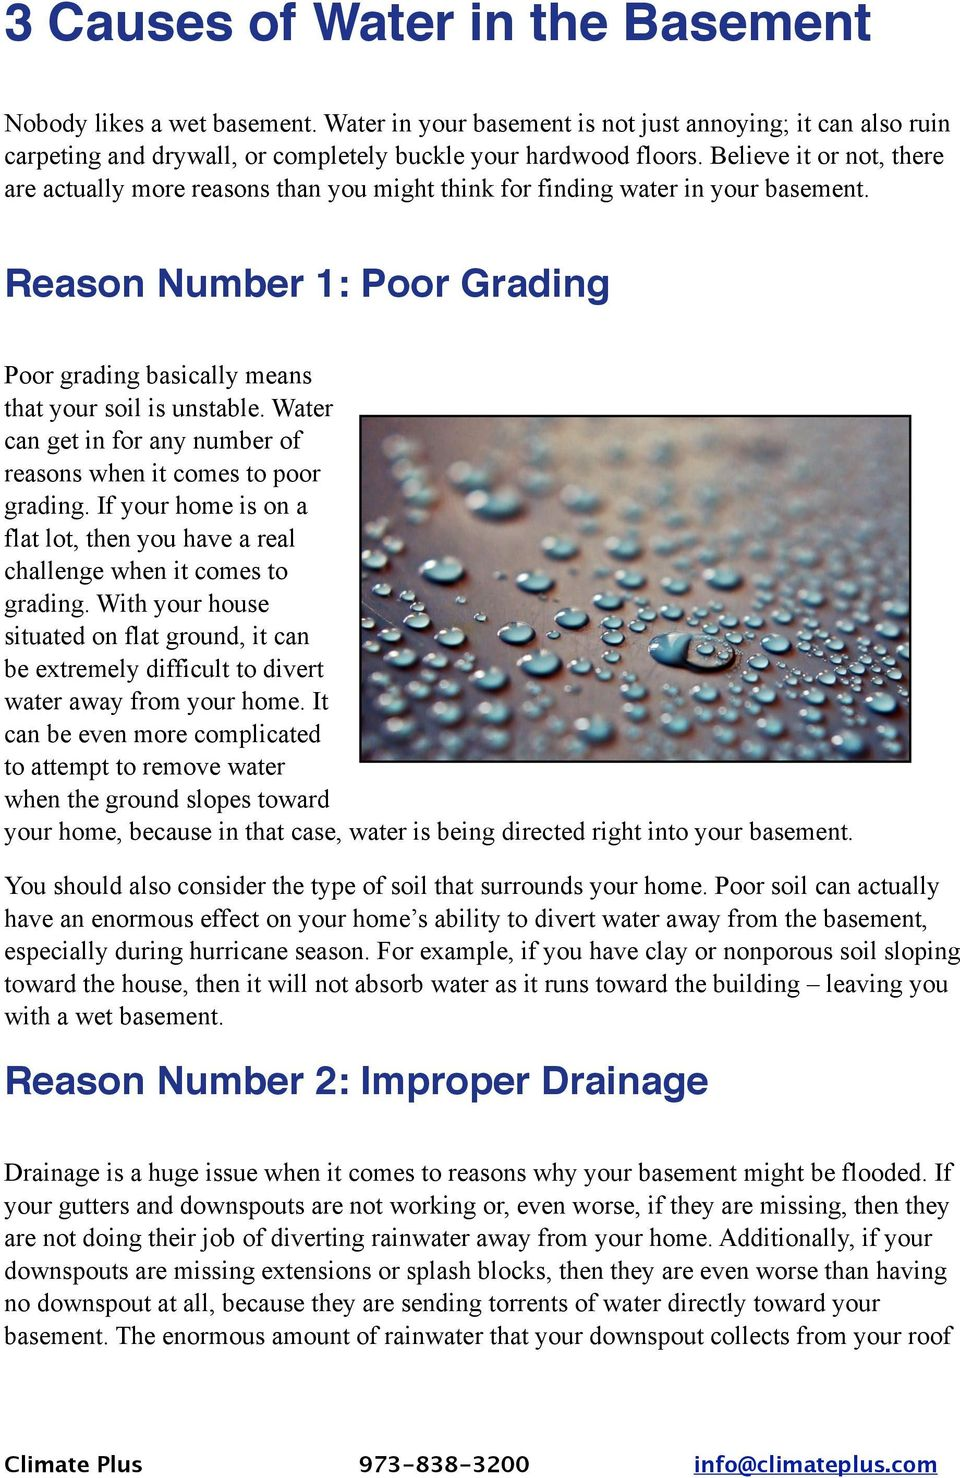 Water can get in for any number of reasons when it comes to poor grading. If your home is on a flat lot, then you have a real challenge when it comes to grading.